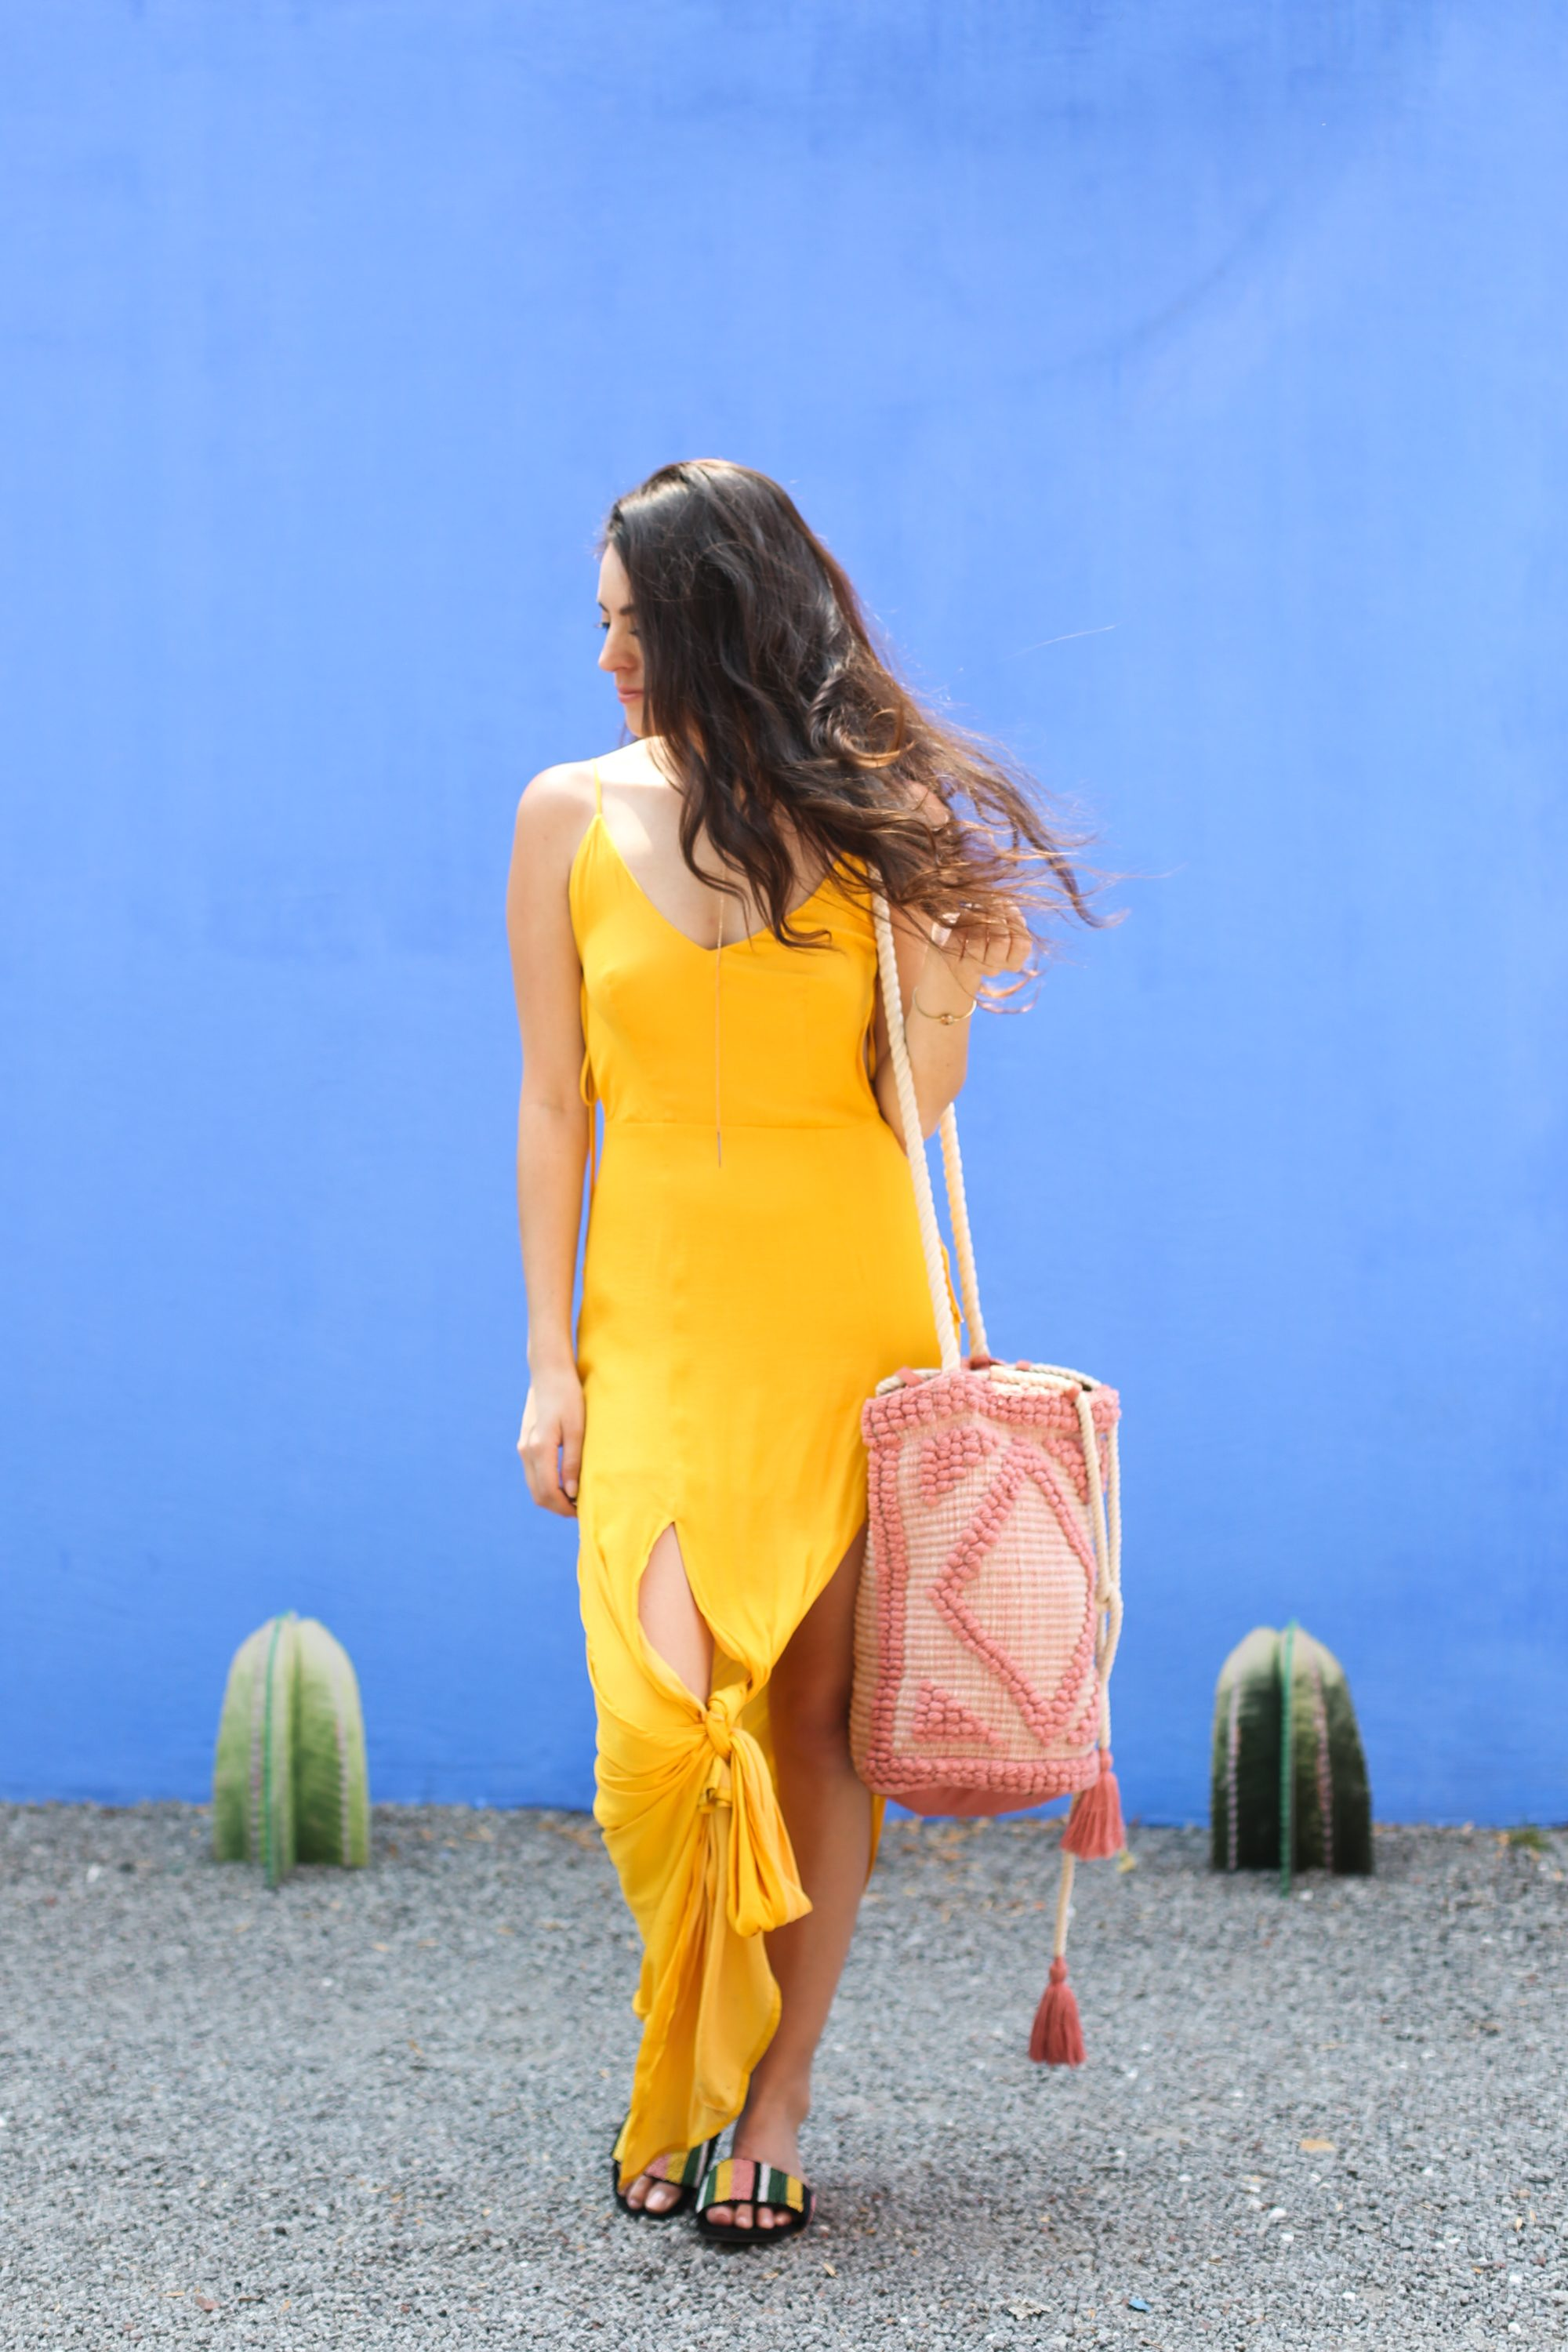 mexico city, what to wearin mexico city, vacation outfit ideas, tropical outfit ideas, yellow maxi dress, zara FLAT BEADED SLIDES multicolor, asos SOUTH BEACH DRAWSTRING SHOULDER BAG IN LULLABY PINK, south moon under Capulet Double Slit & Ties Maxi Dress